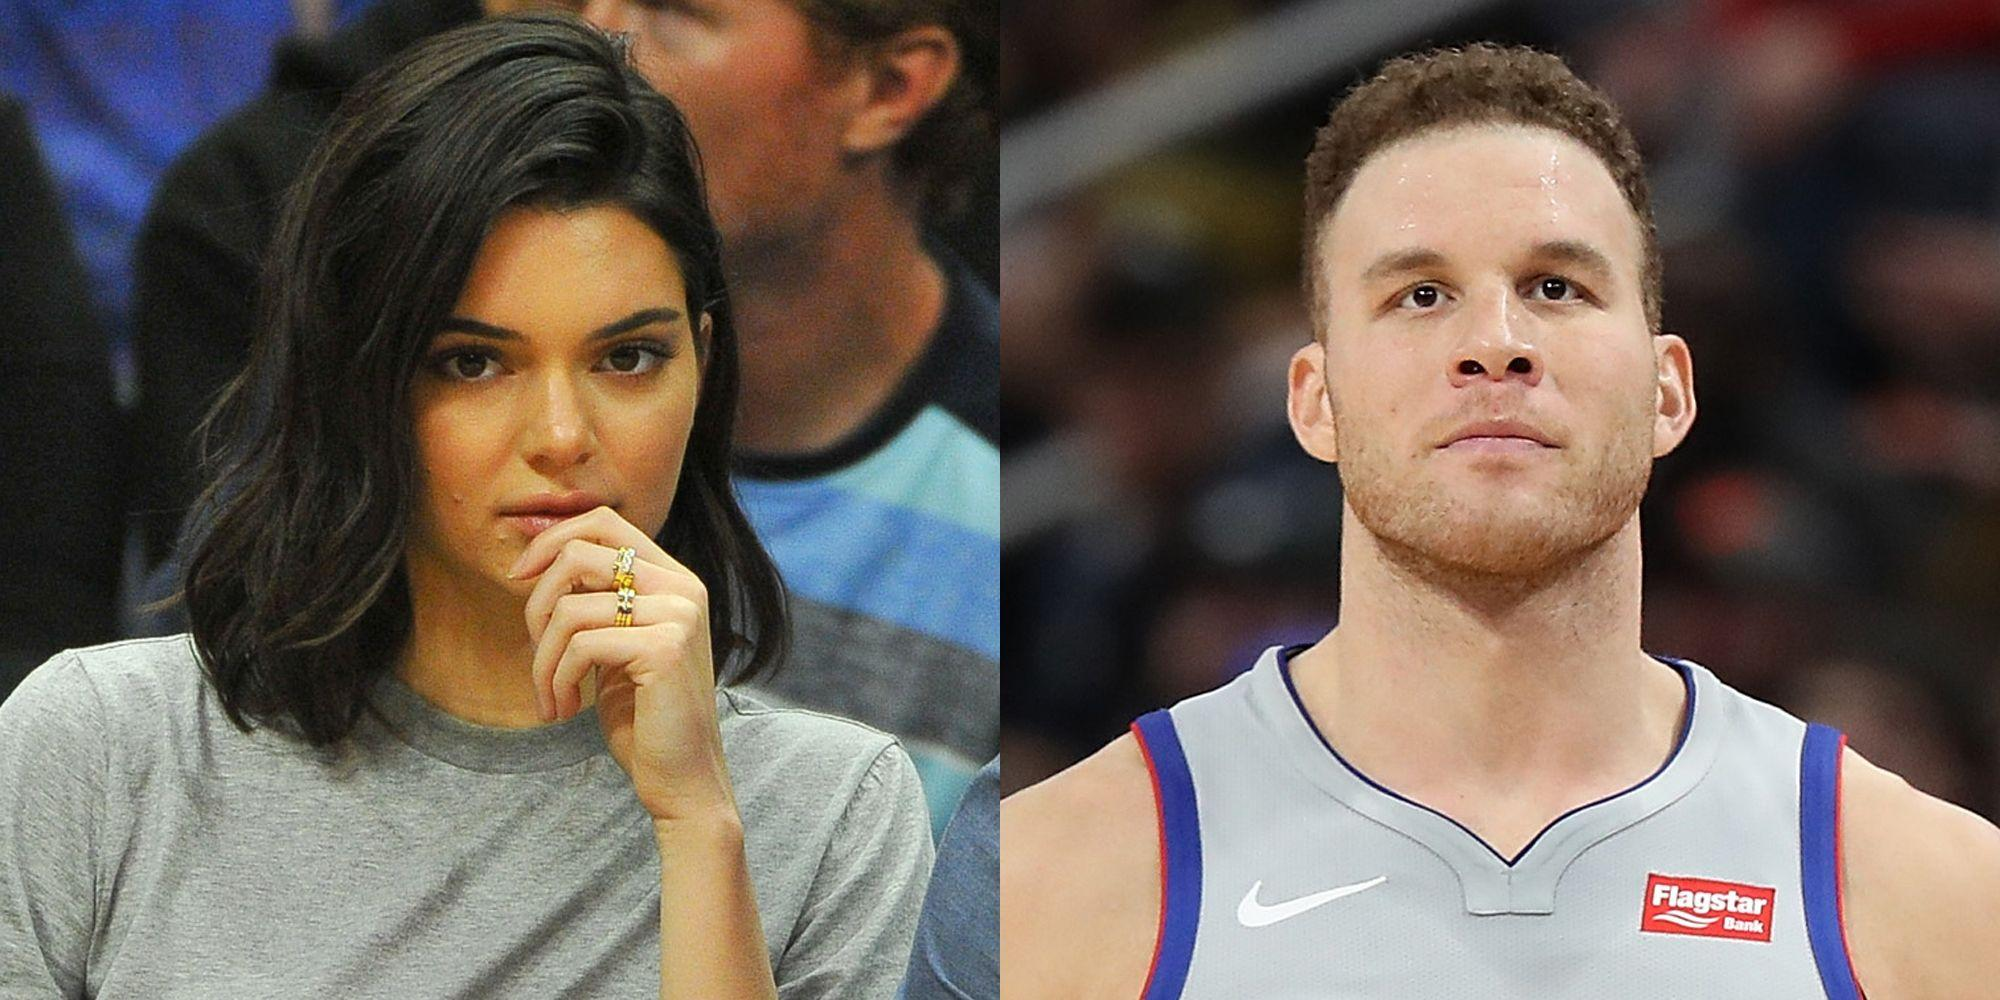 KUWK: Kendall Jenner And Former Boyfriend Blake Griffin Ran Into Each Other On Labor Day - Details!